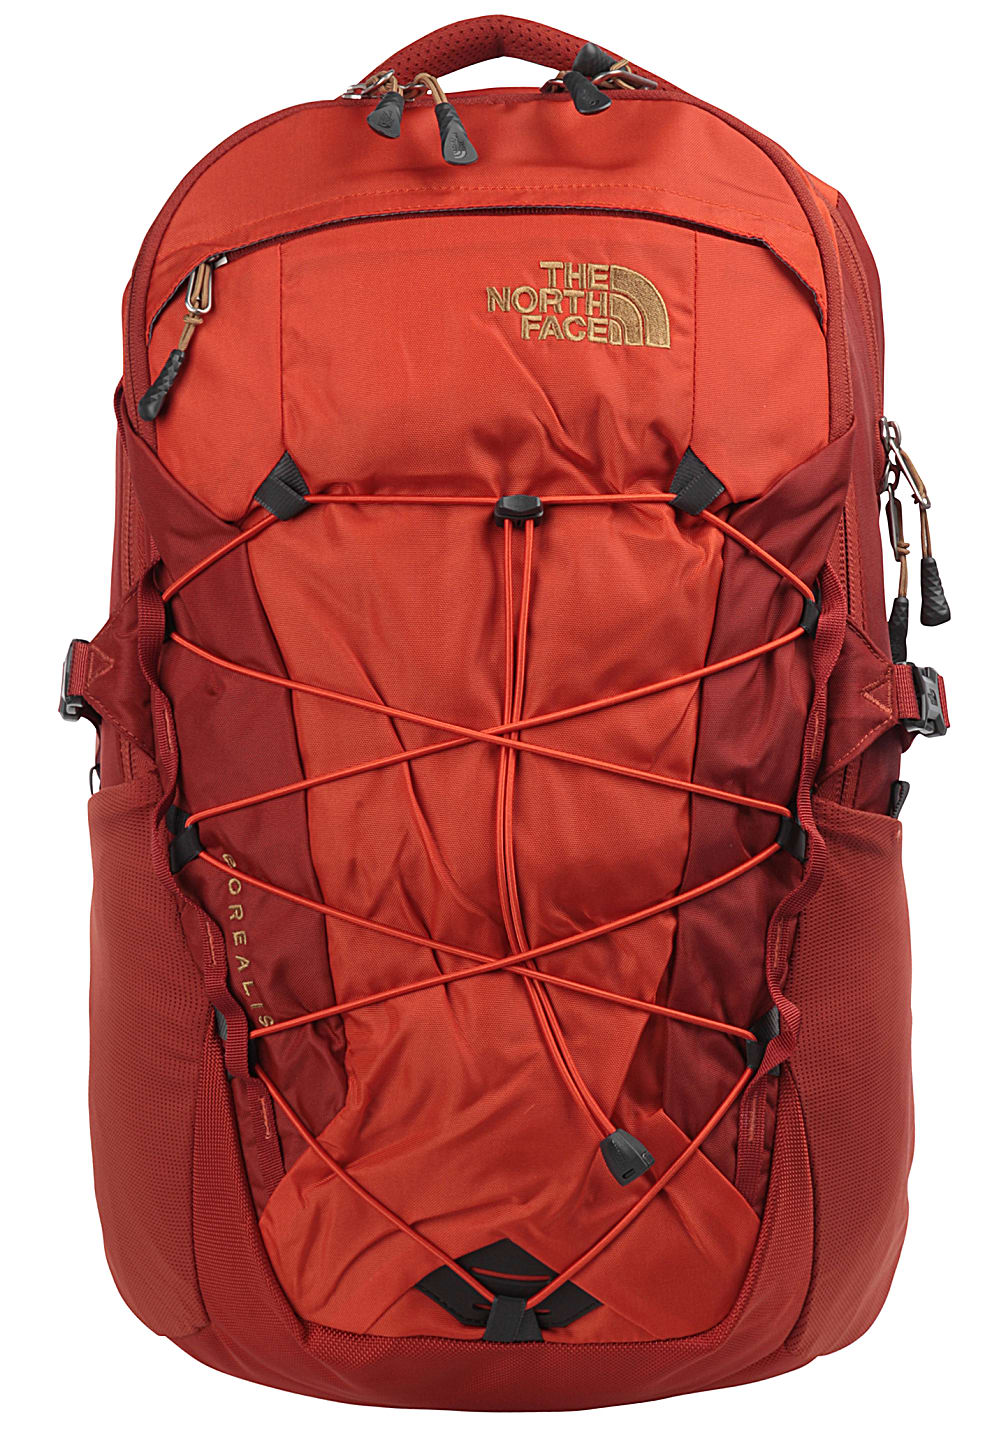 426fc6a46 THE NORTH FACE Borealis - Backpack - Orange